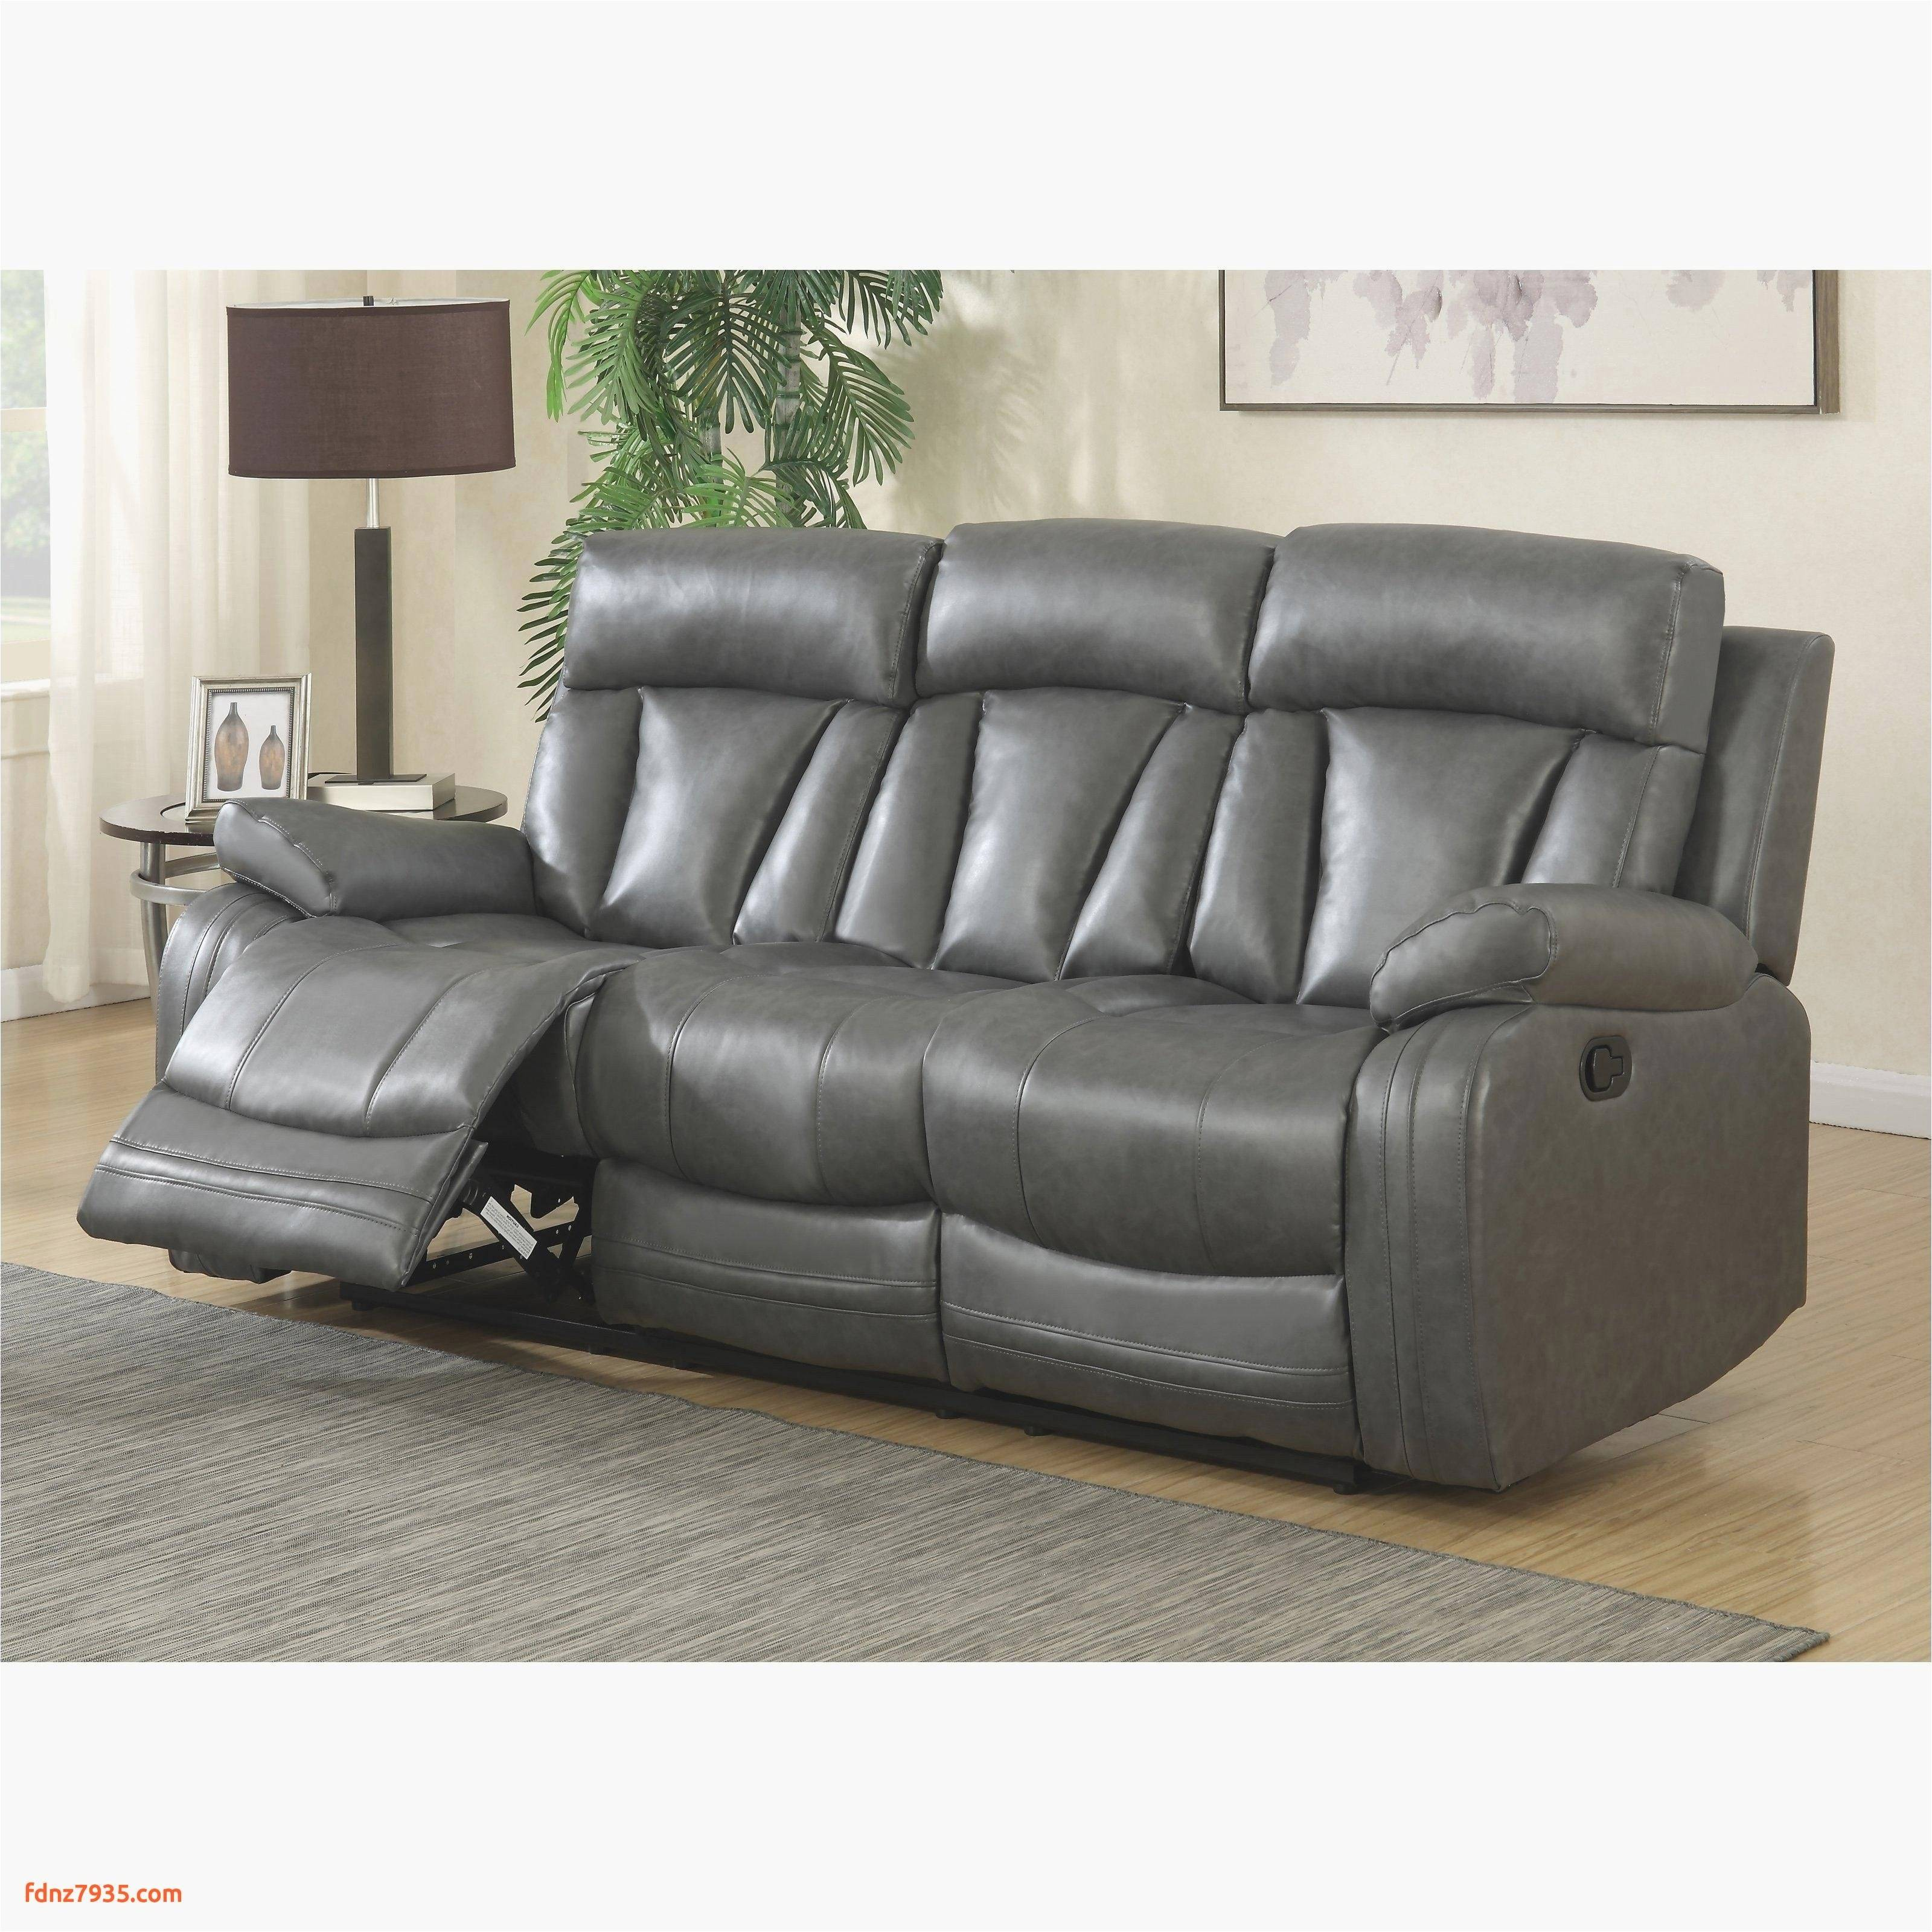 grey leather sofa 25 awesome 2 seater leather recliner sofa bolazia of grey leather sofa